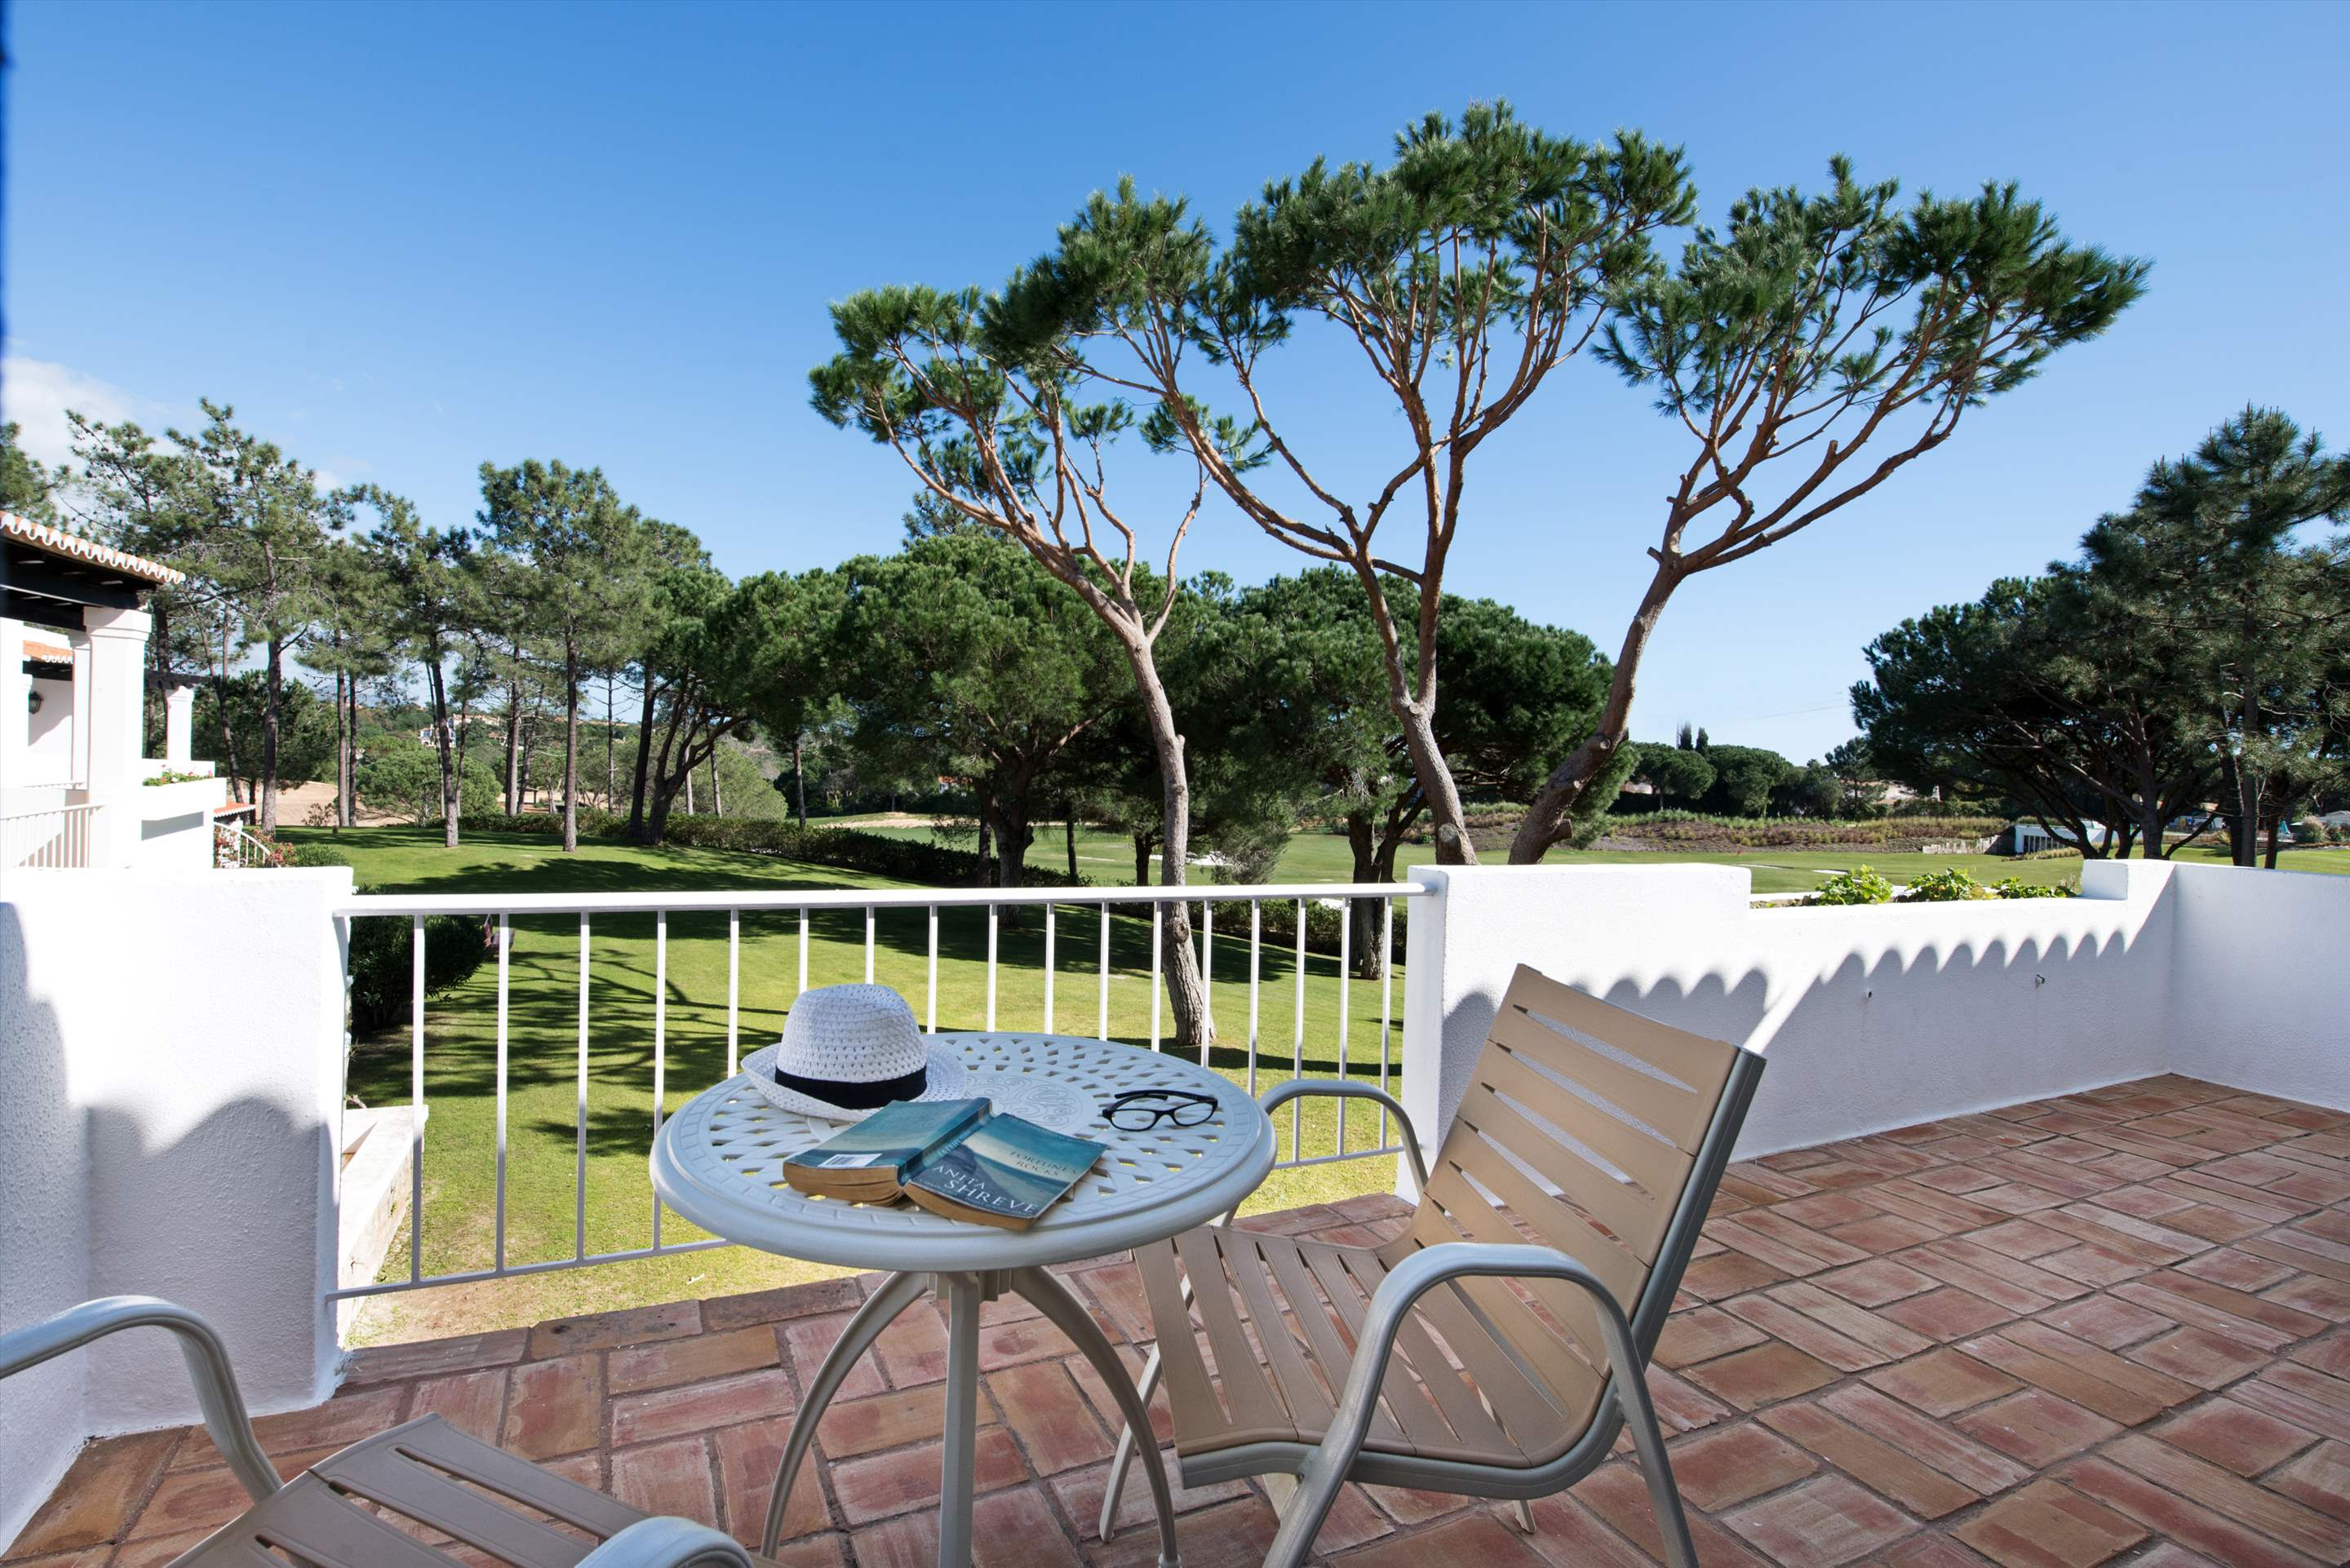 Four Seasons Country Club 1 bed, Superior - Saturday Arrival, 1 bedroom apartment in Four Seasons Country Club, Algarve Photo #8